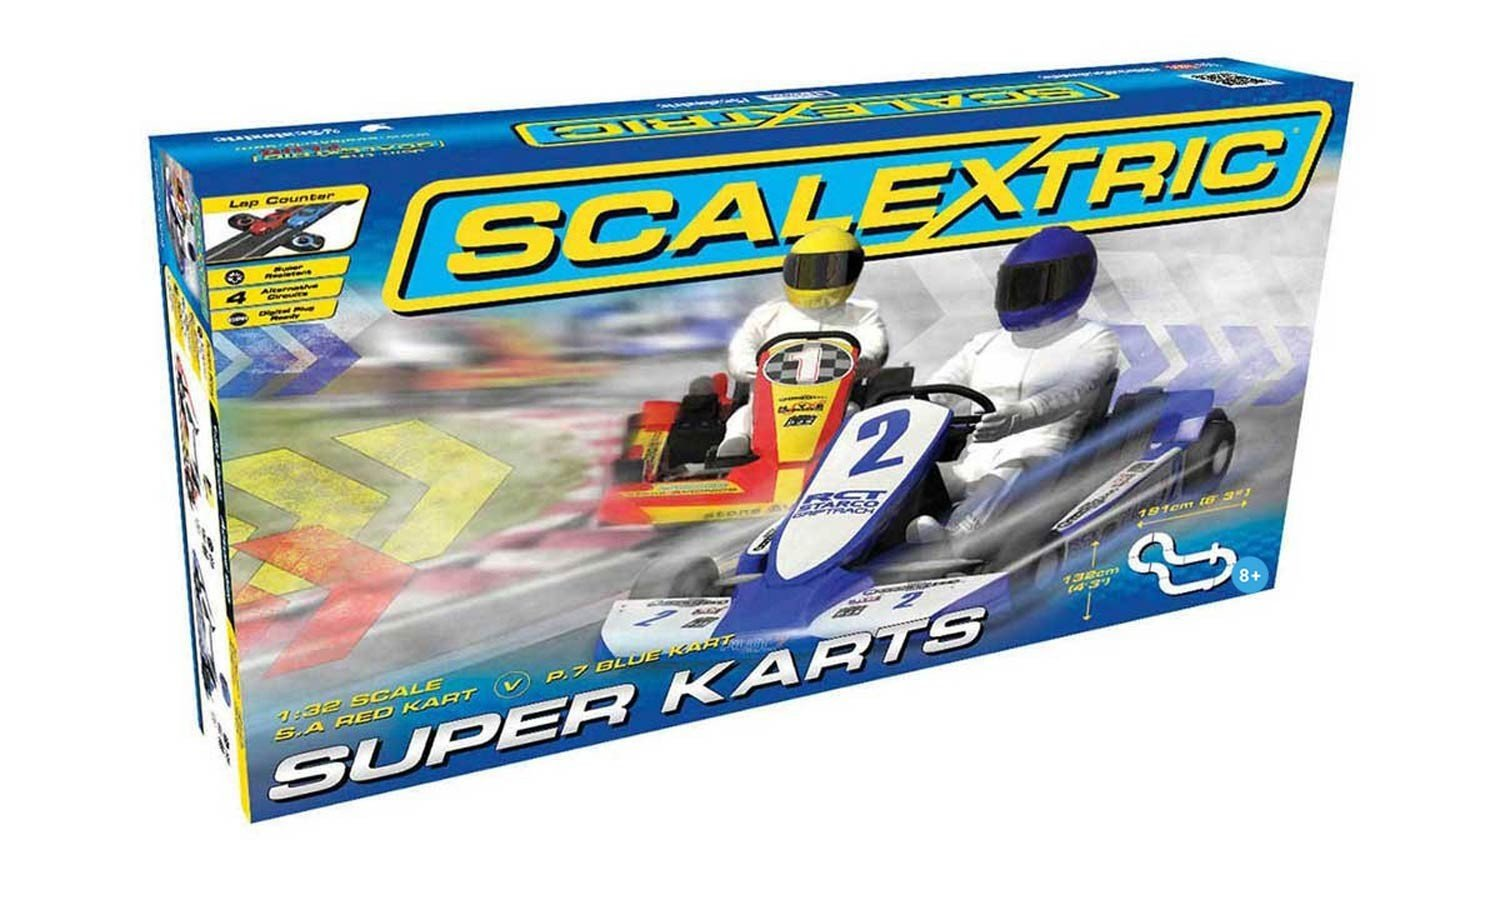 Scalextric Super Karts 1: 32 Scale Slot Car Playset Hornby C1334T